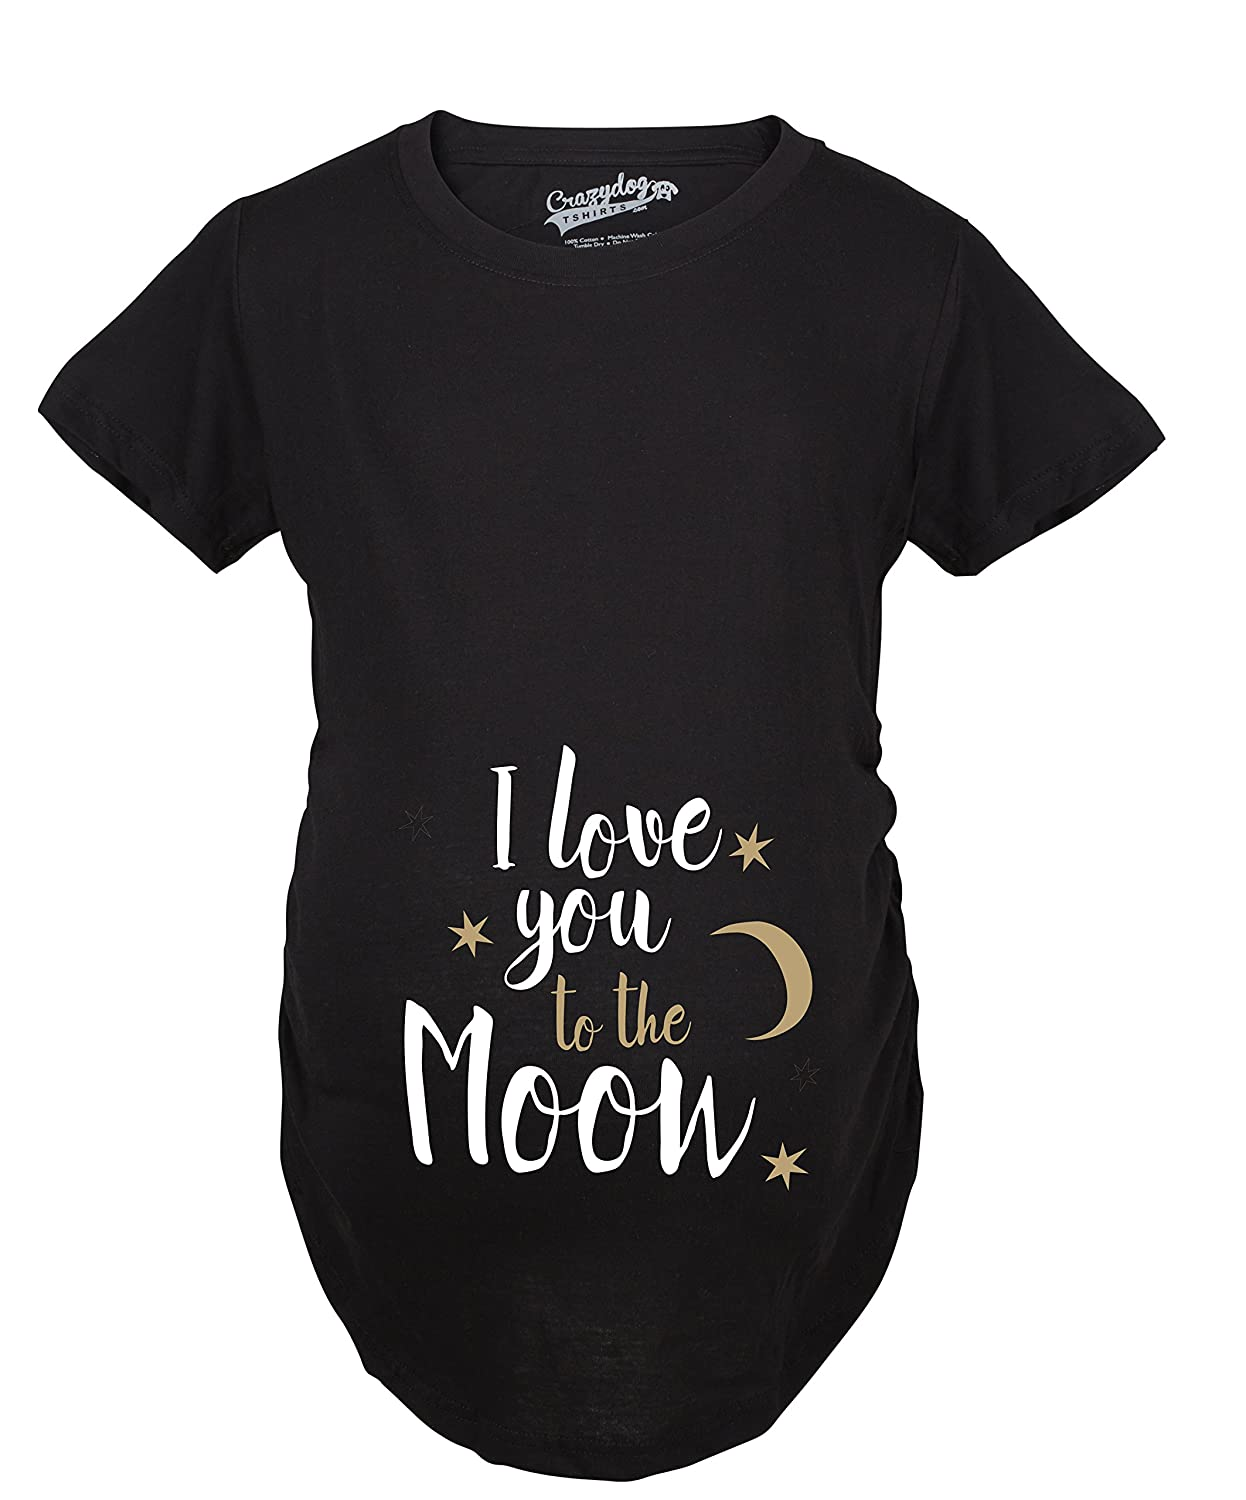 56d3832a360c8 Maternity I Love You to The Moon Cute Maternity Shirts Announce Pregnancy  Shirt Fun at Amazon Women's Clothing store: